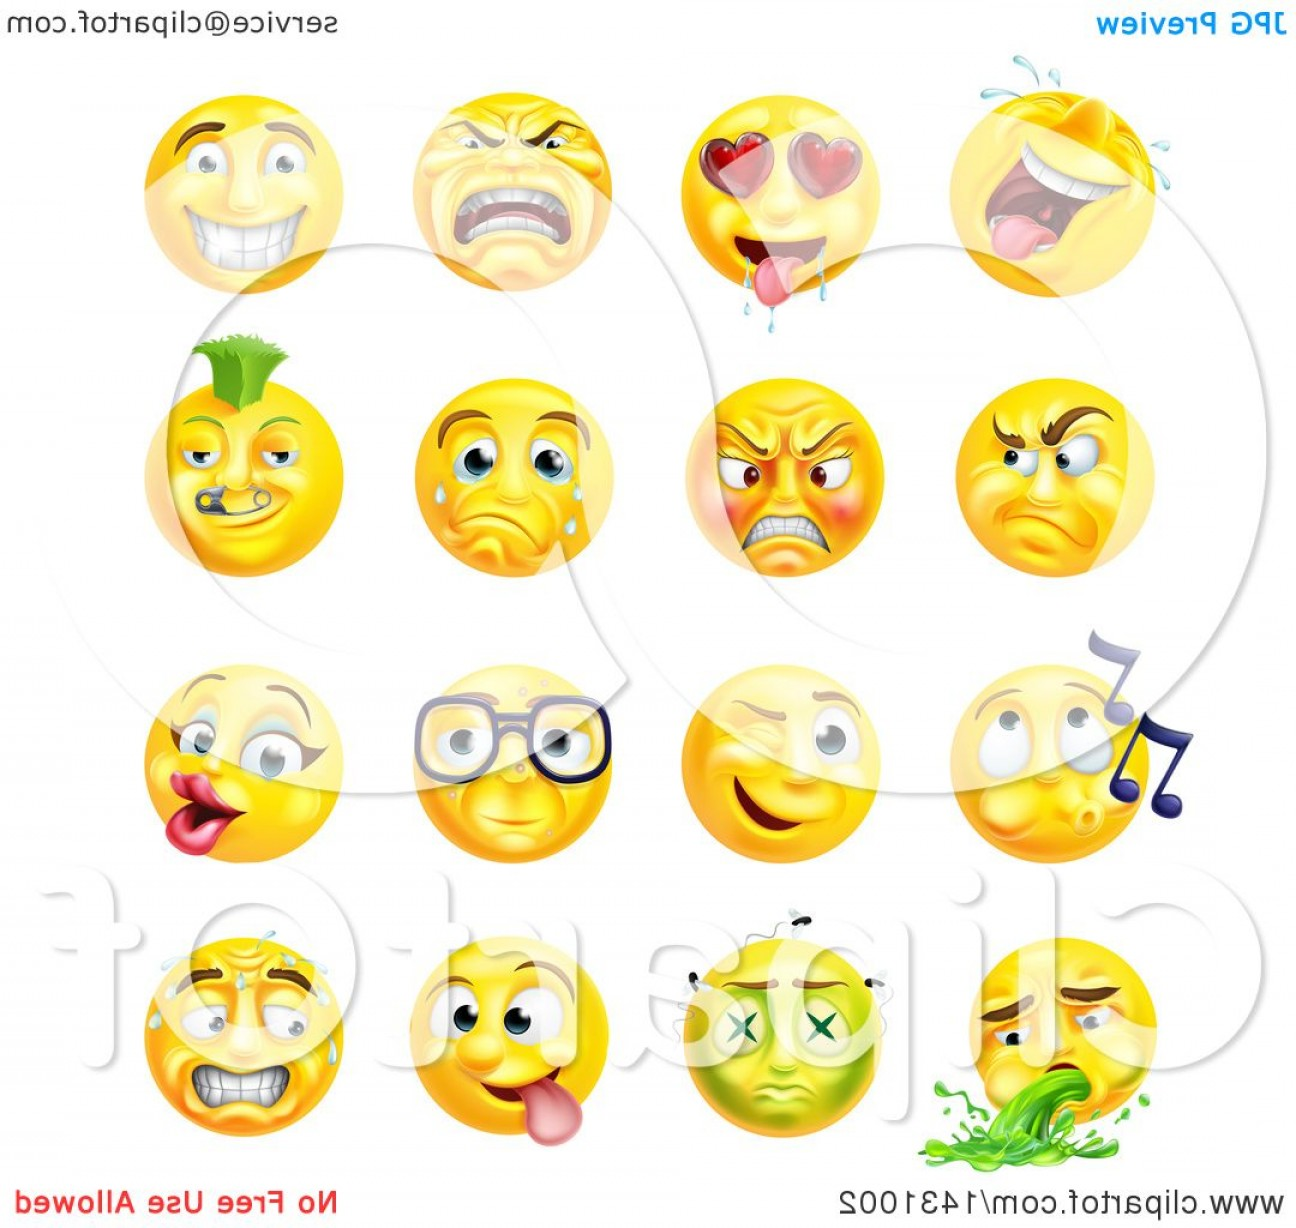 Rainbow Face Emoji Vector: Cartoon Yellow Emoji Smiley Face Emoticons